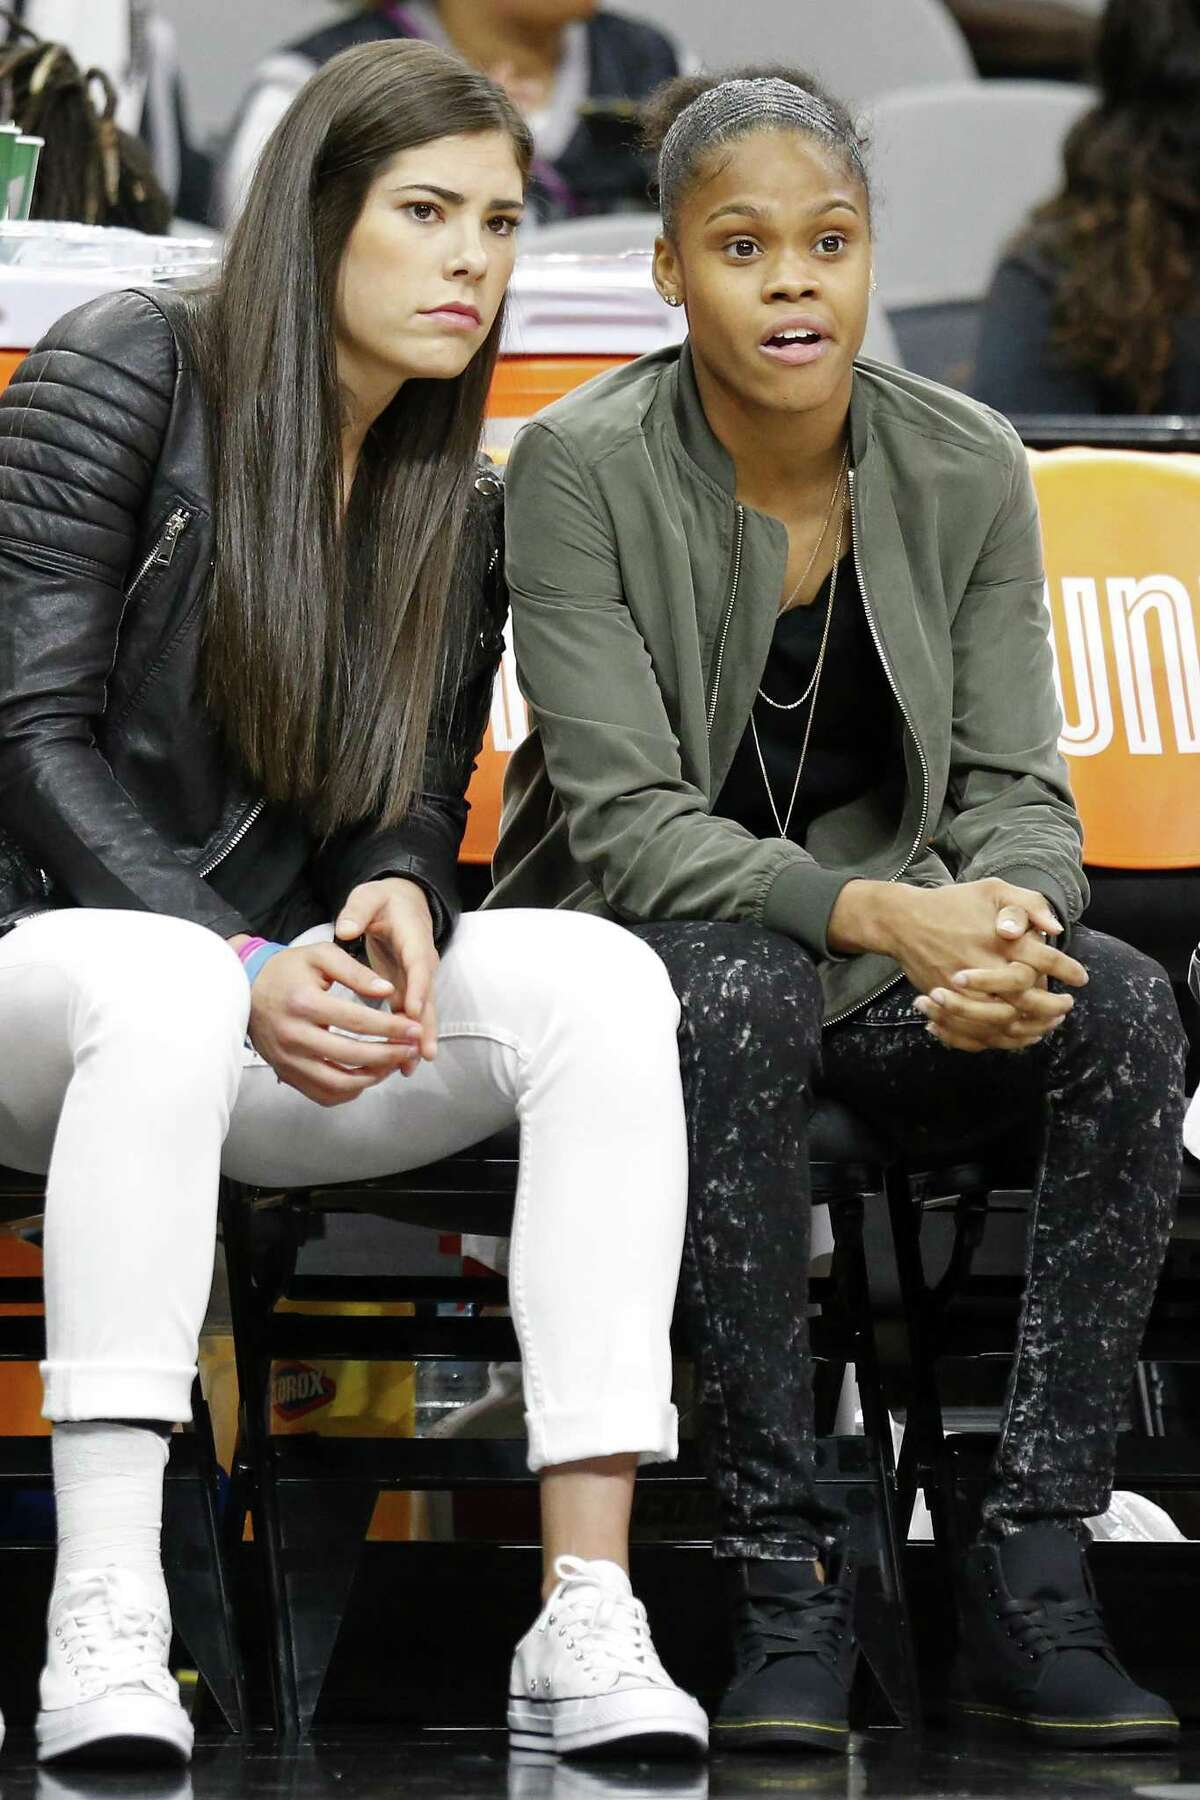 Injured Stars players Kelsey Plum (left) and Moriah Jefferson watch first half action against the Phoenix Mercury from the bench on May 19, 2017 at the AT&T Center.